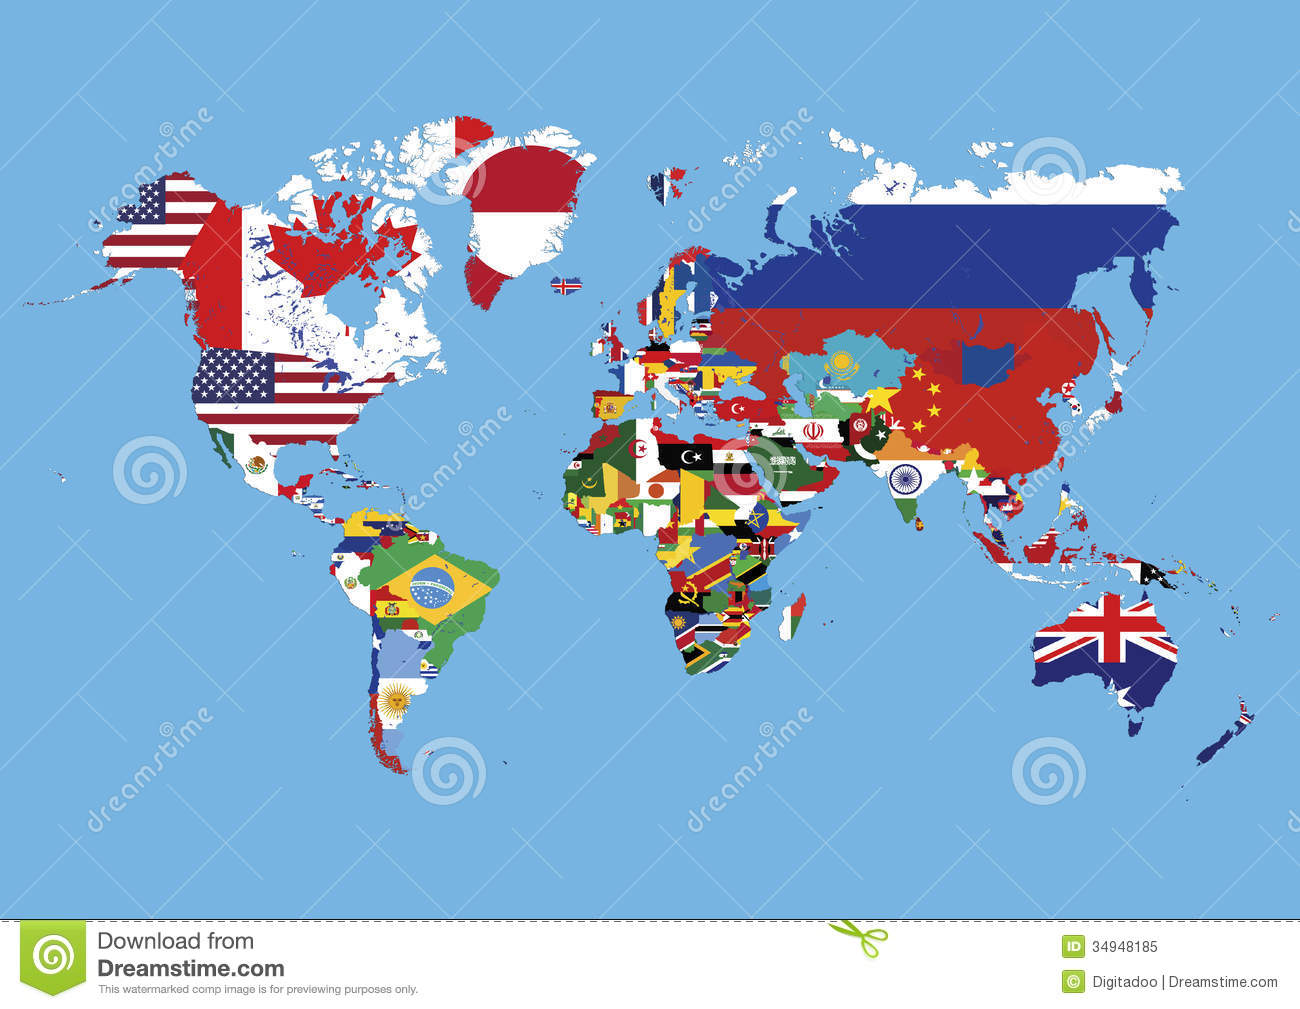 World map colored in countries flags no names stock illustration world map colored in countries flags no names gumiabroncs